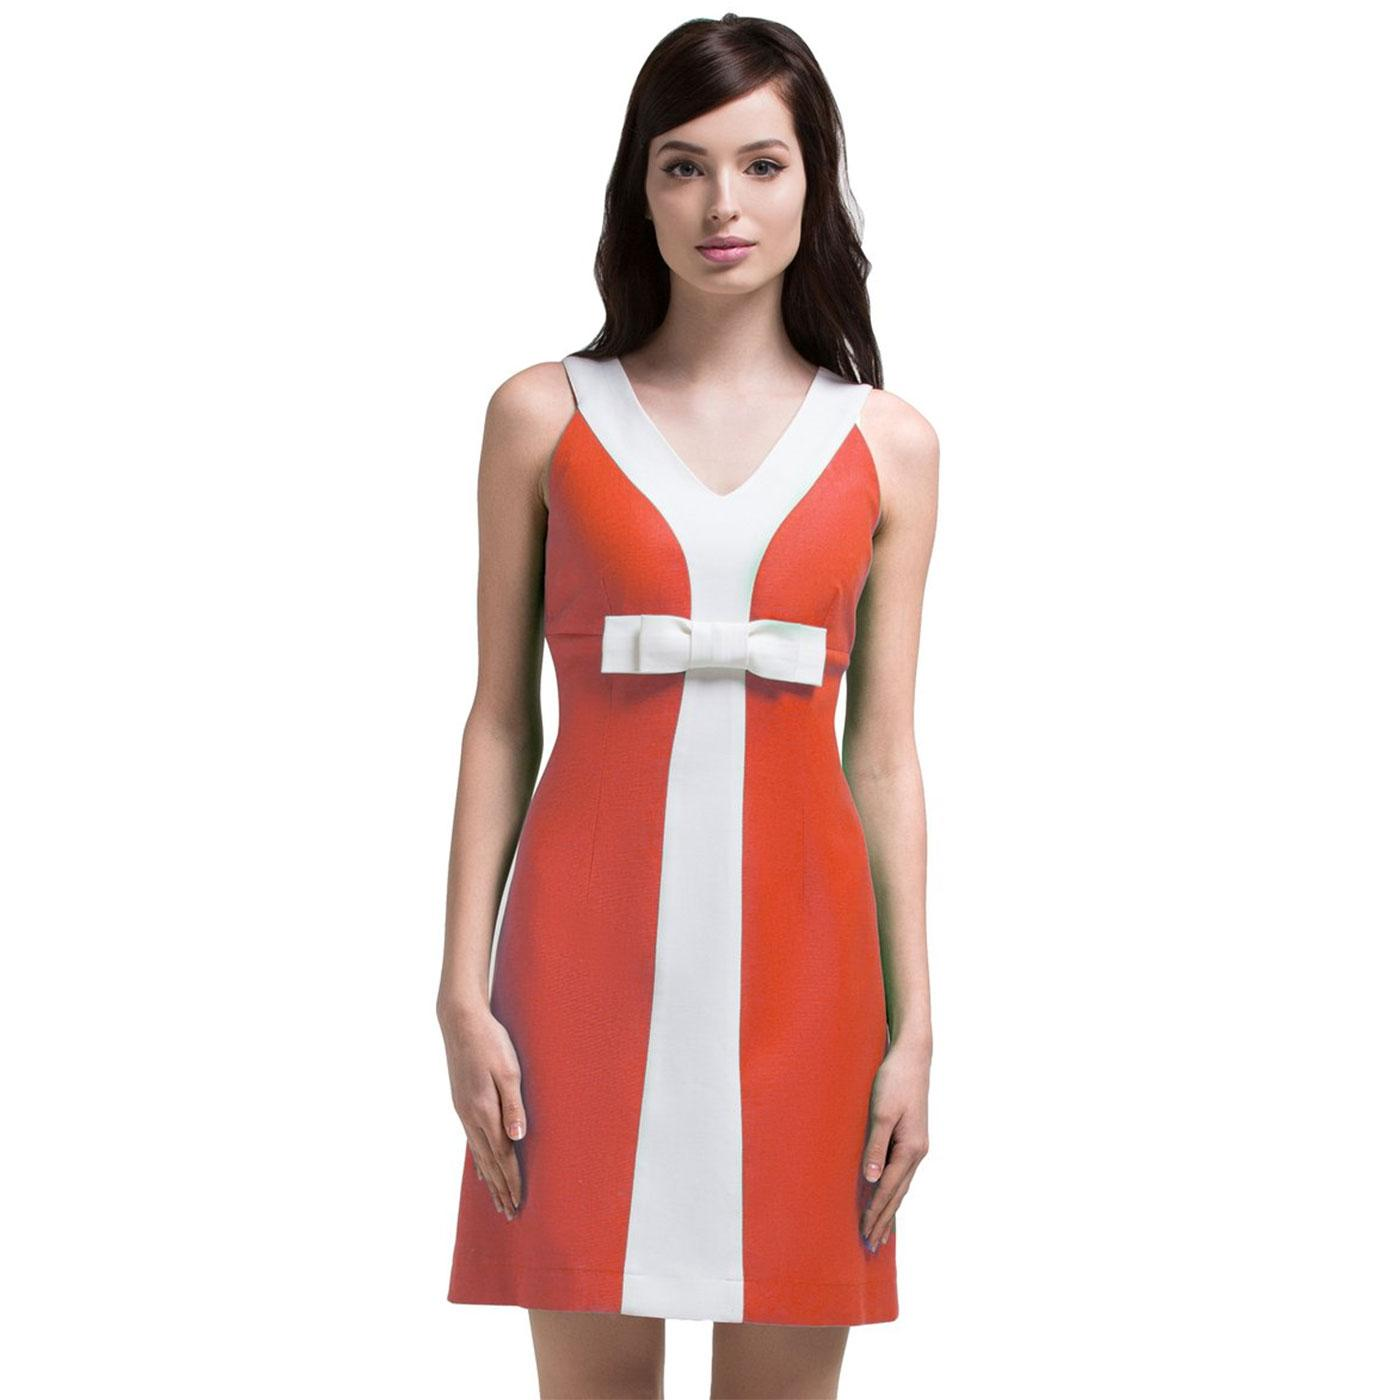 MARMALADE Retro 60s Mod Sleeveless Y Dress Coral